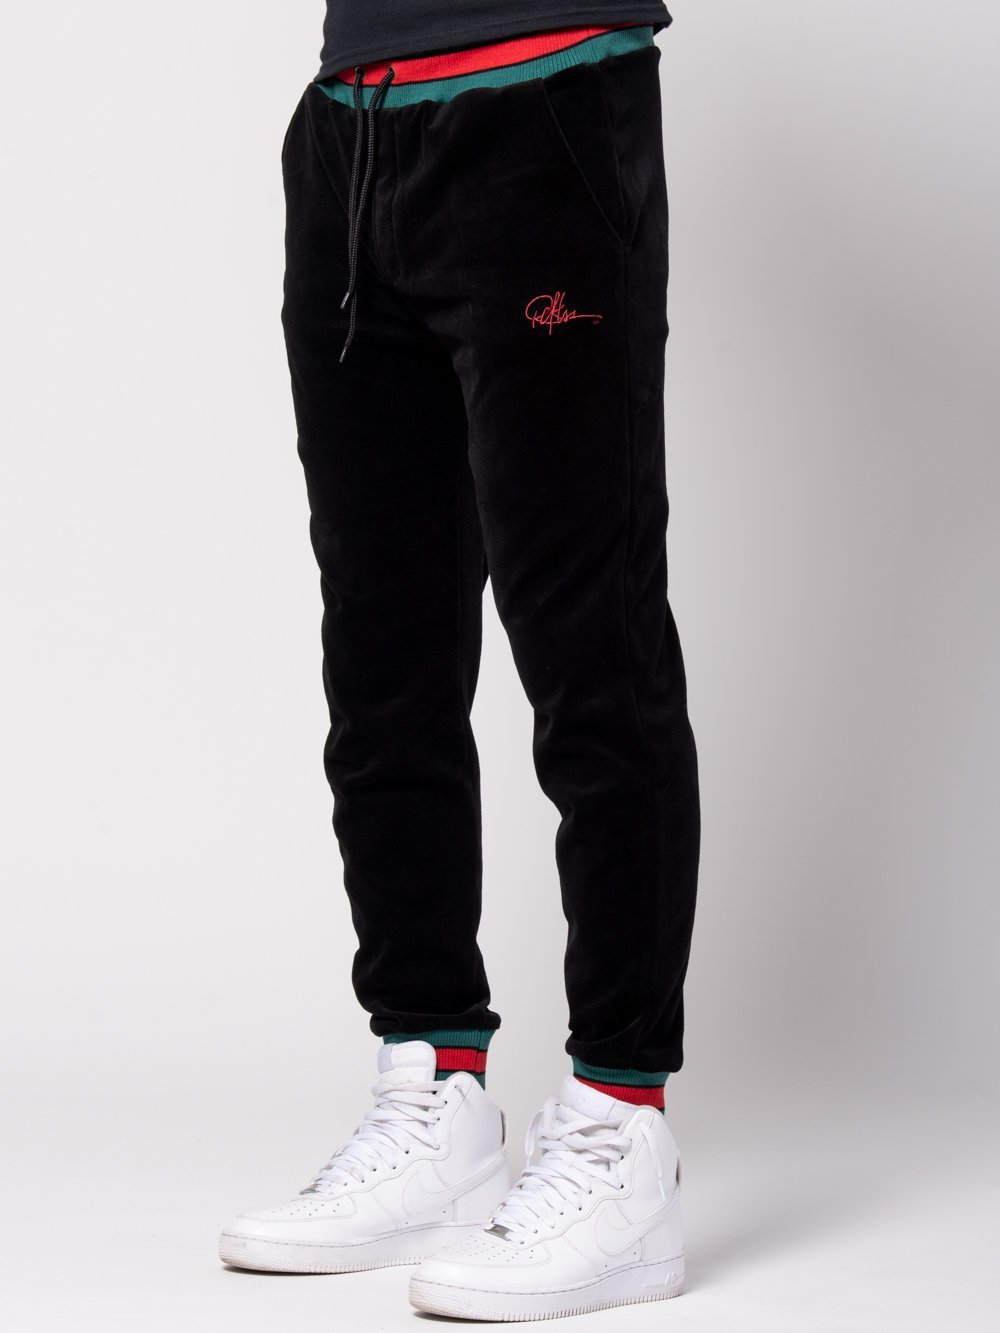 Young and Reckless Mens - Bottoms - Sweatpants Tristan Velour Sweatpants - Black